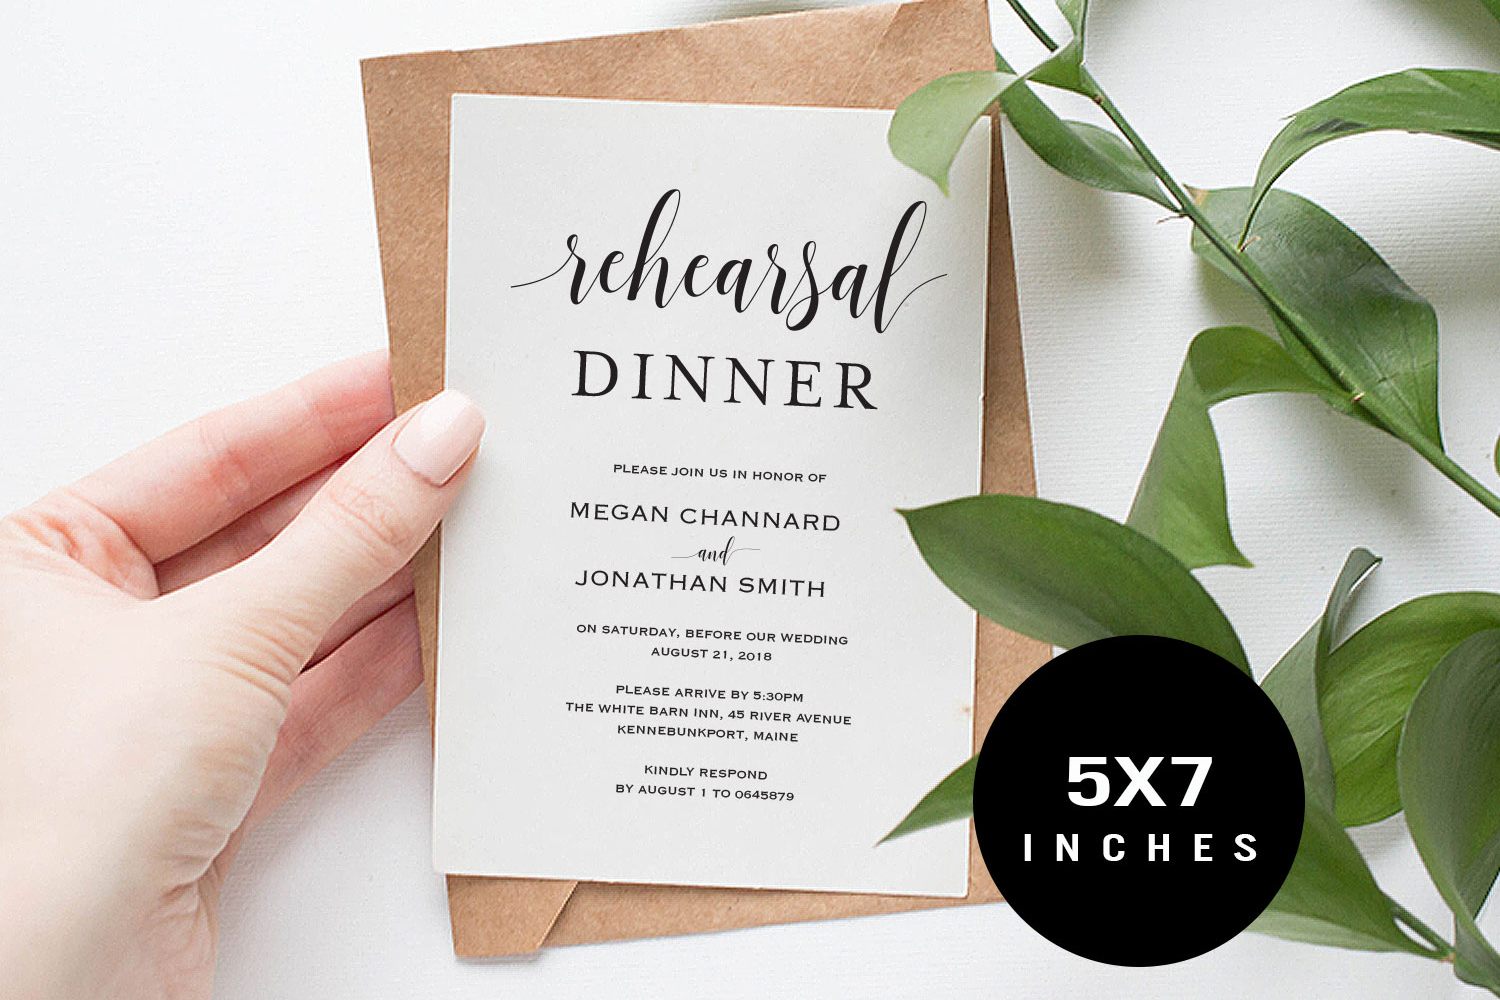 Rehearsal Dinner example image 1